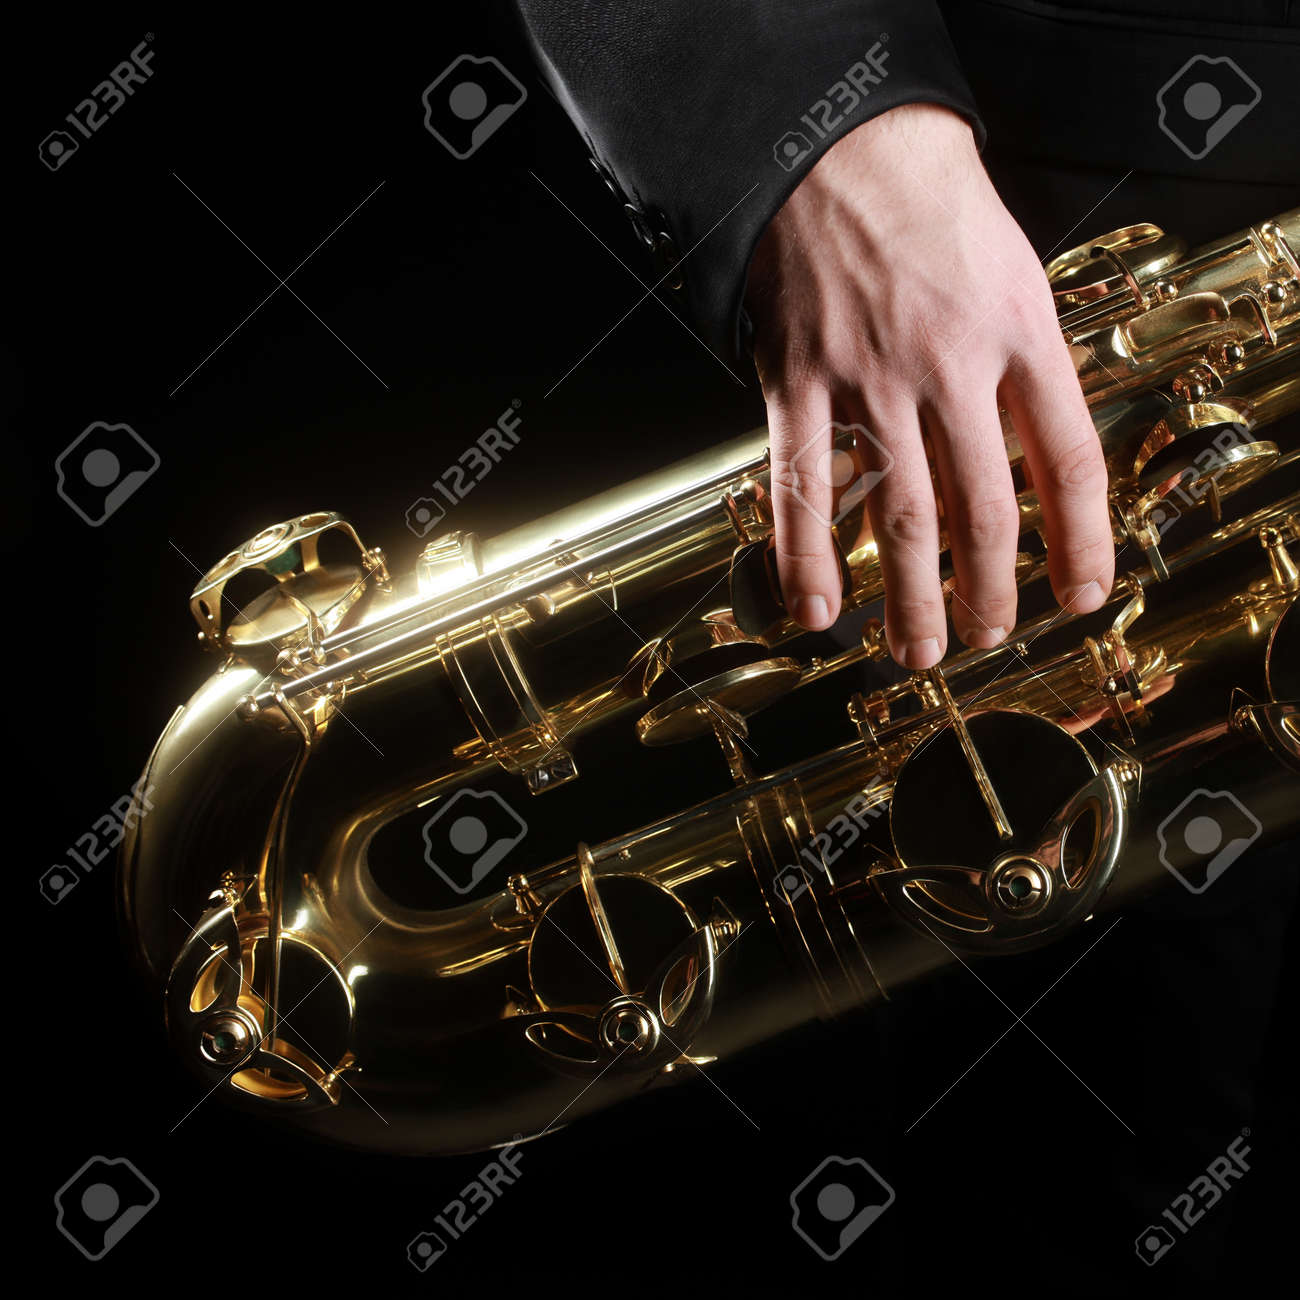 Saxophone jazz music instruments details. Baritone sax with hand of saxophonist closeup on black Standard-Bild - 34621365